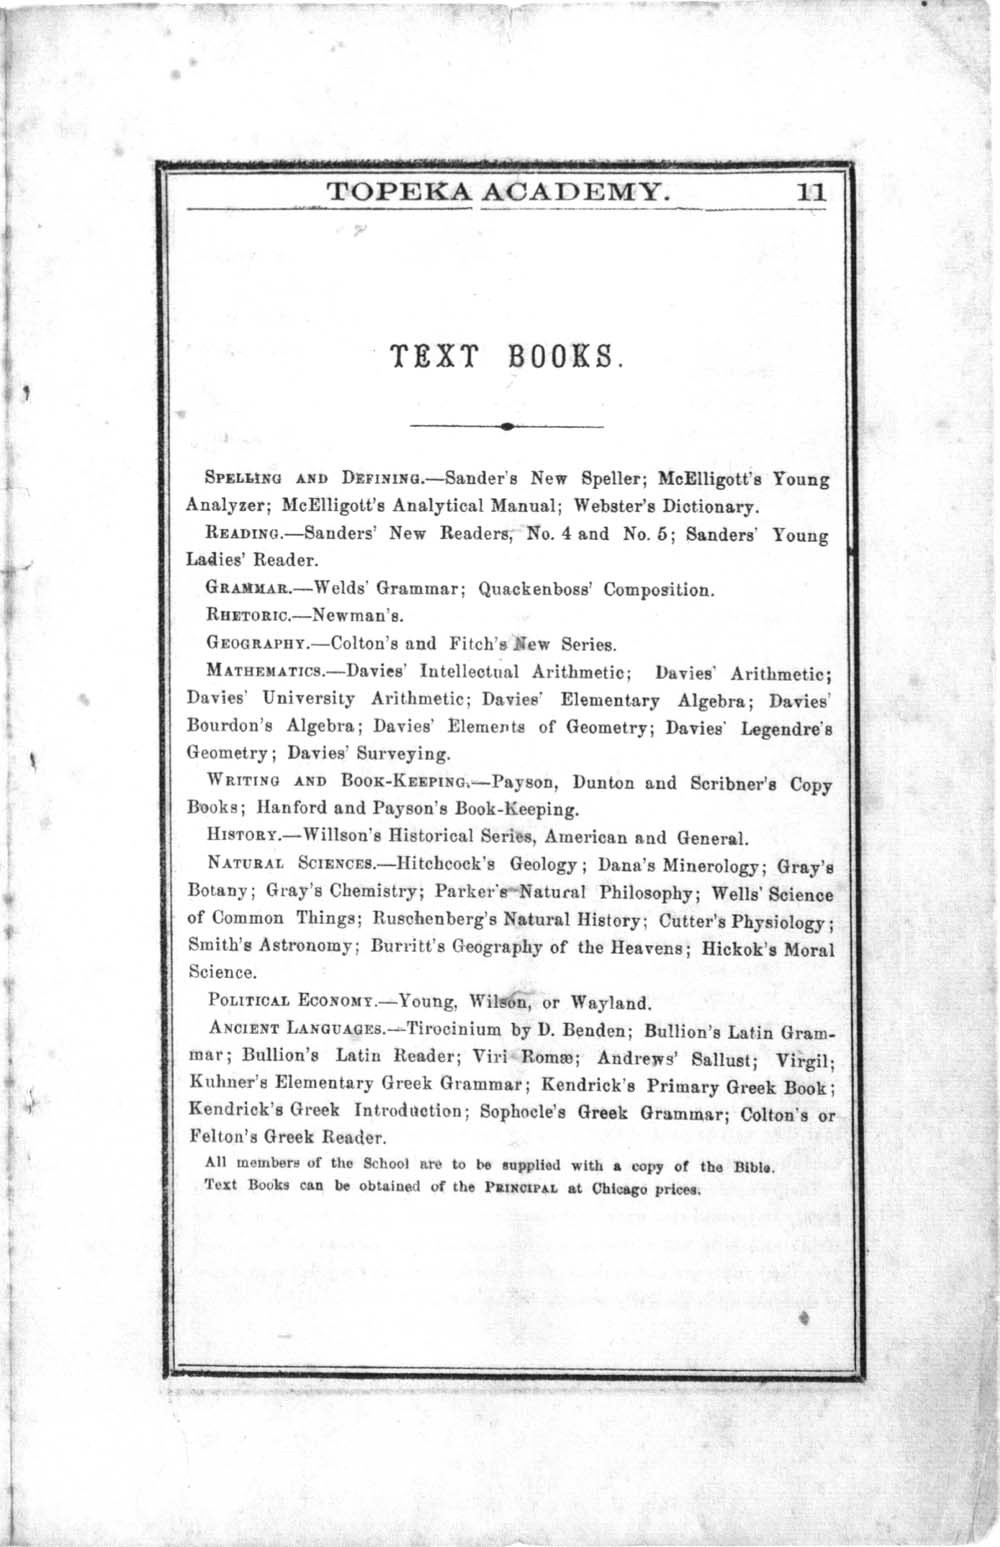 First semi-annual catalogue of Topeka Academy - 9